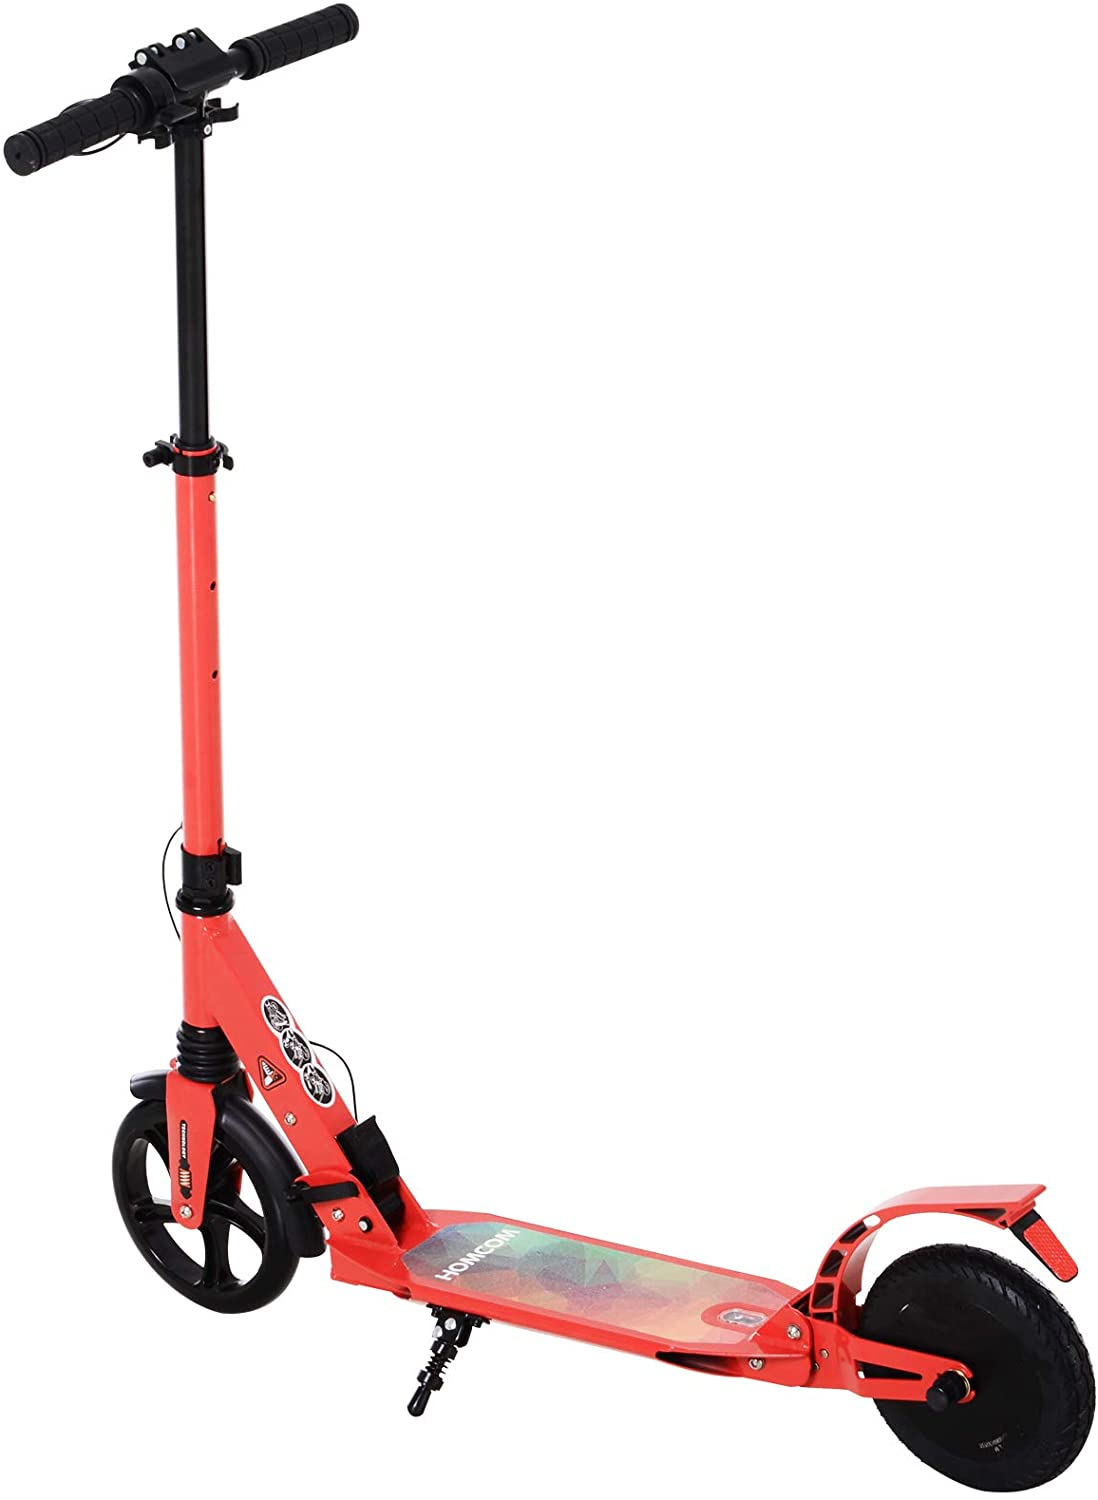 HOMCOM 150W Electric Scooter Motorised Mobility Scooter